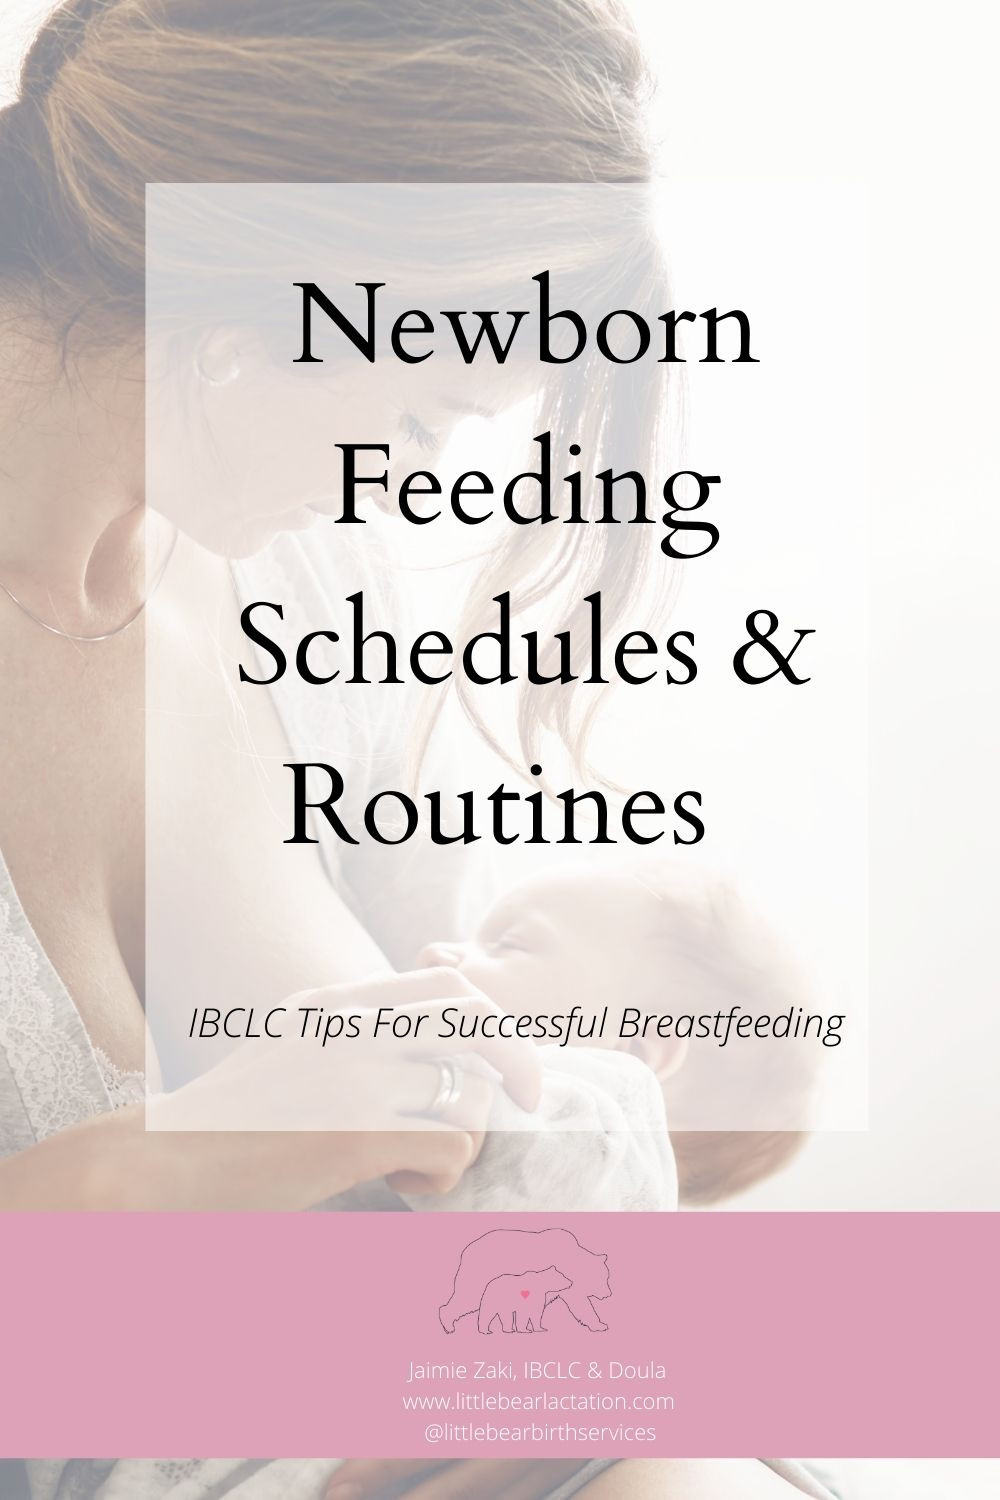 Newborn Feeding Schedules and Routines IBCLC breastfeeding tips for successful breastfeeding reach your breastfeeding goals